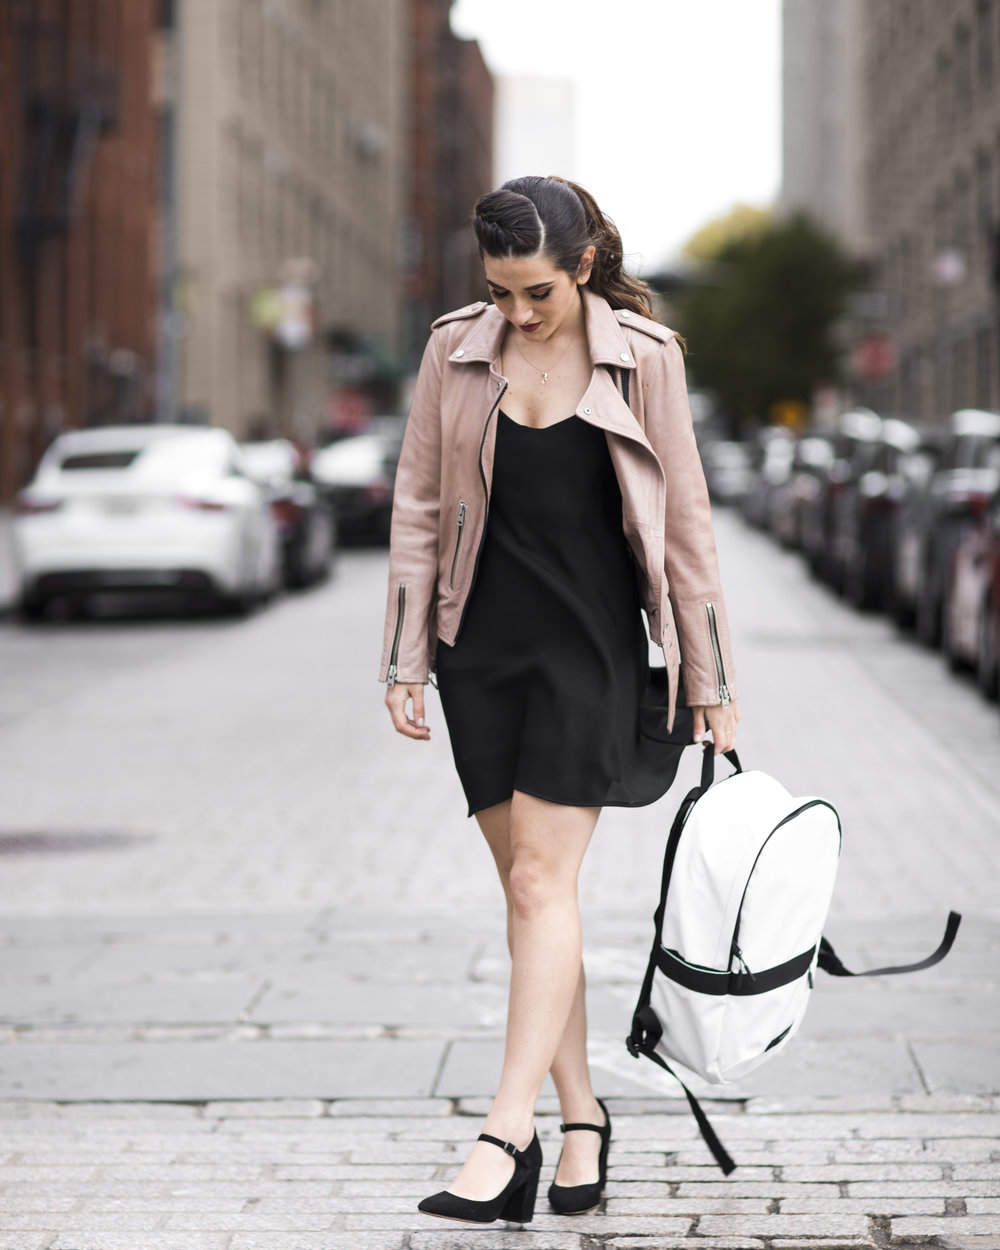 The Perfect Travel Backpack Timbuk2 Louboutins & Love Fashion Blog Esther Santer NYC Street Style Blogger Outfit OOTD Trendy All Saints Blush Pink Leather Backpack Black Pumps Shoes Heels Slip Dress Hair Ponytail Braids Inspo Women Girls Vacation Bag.jpg